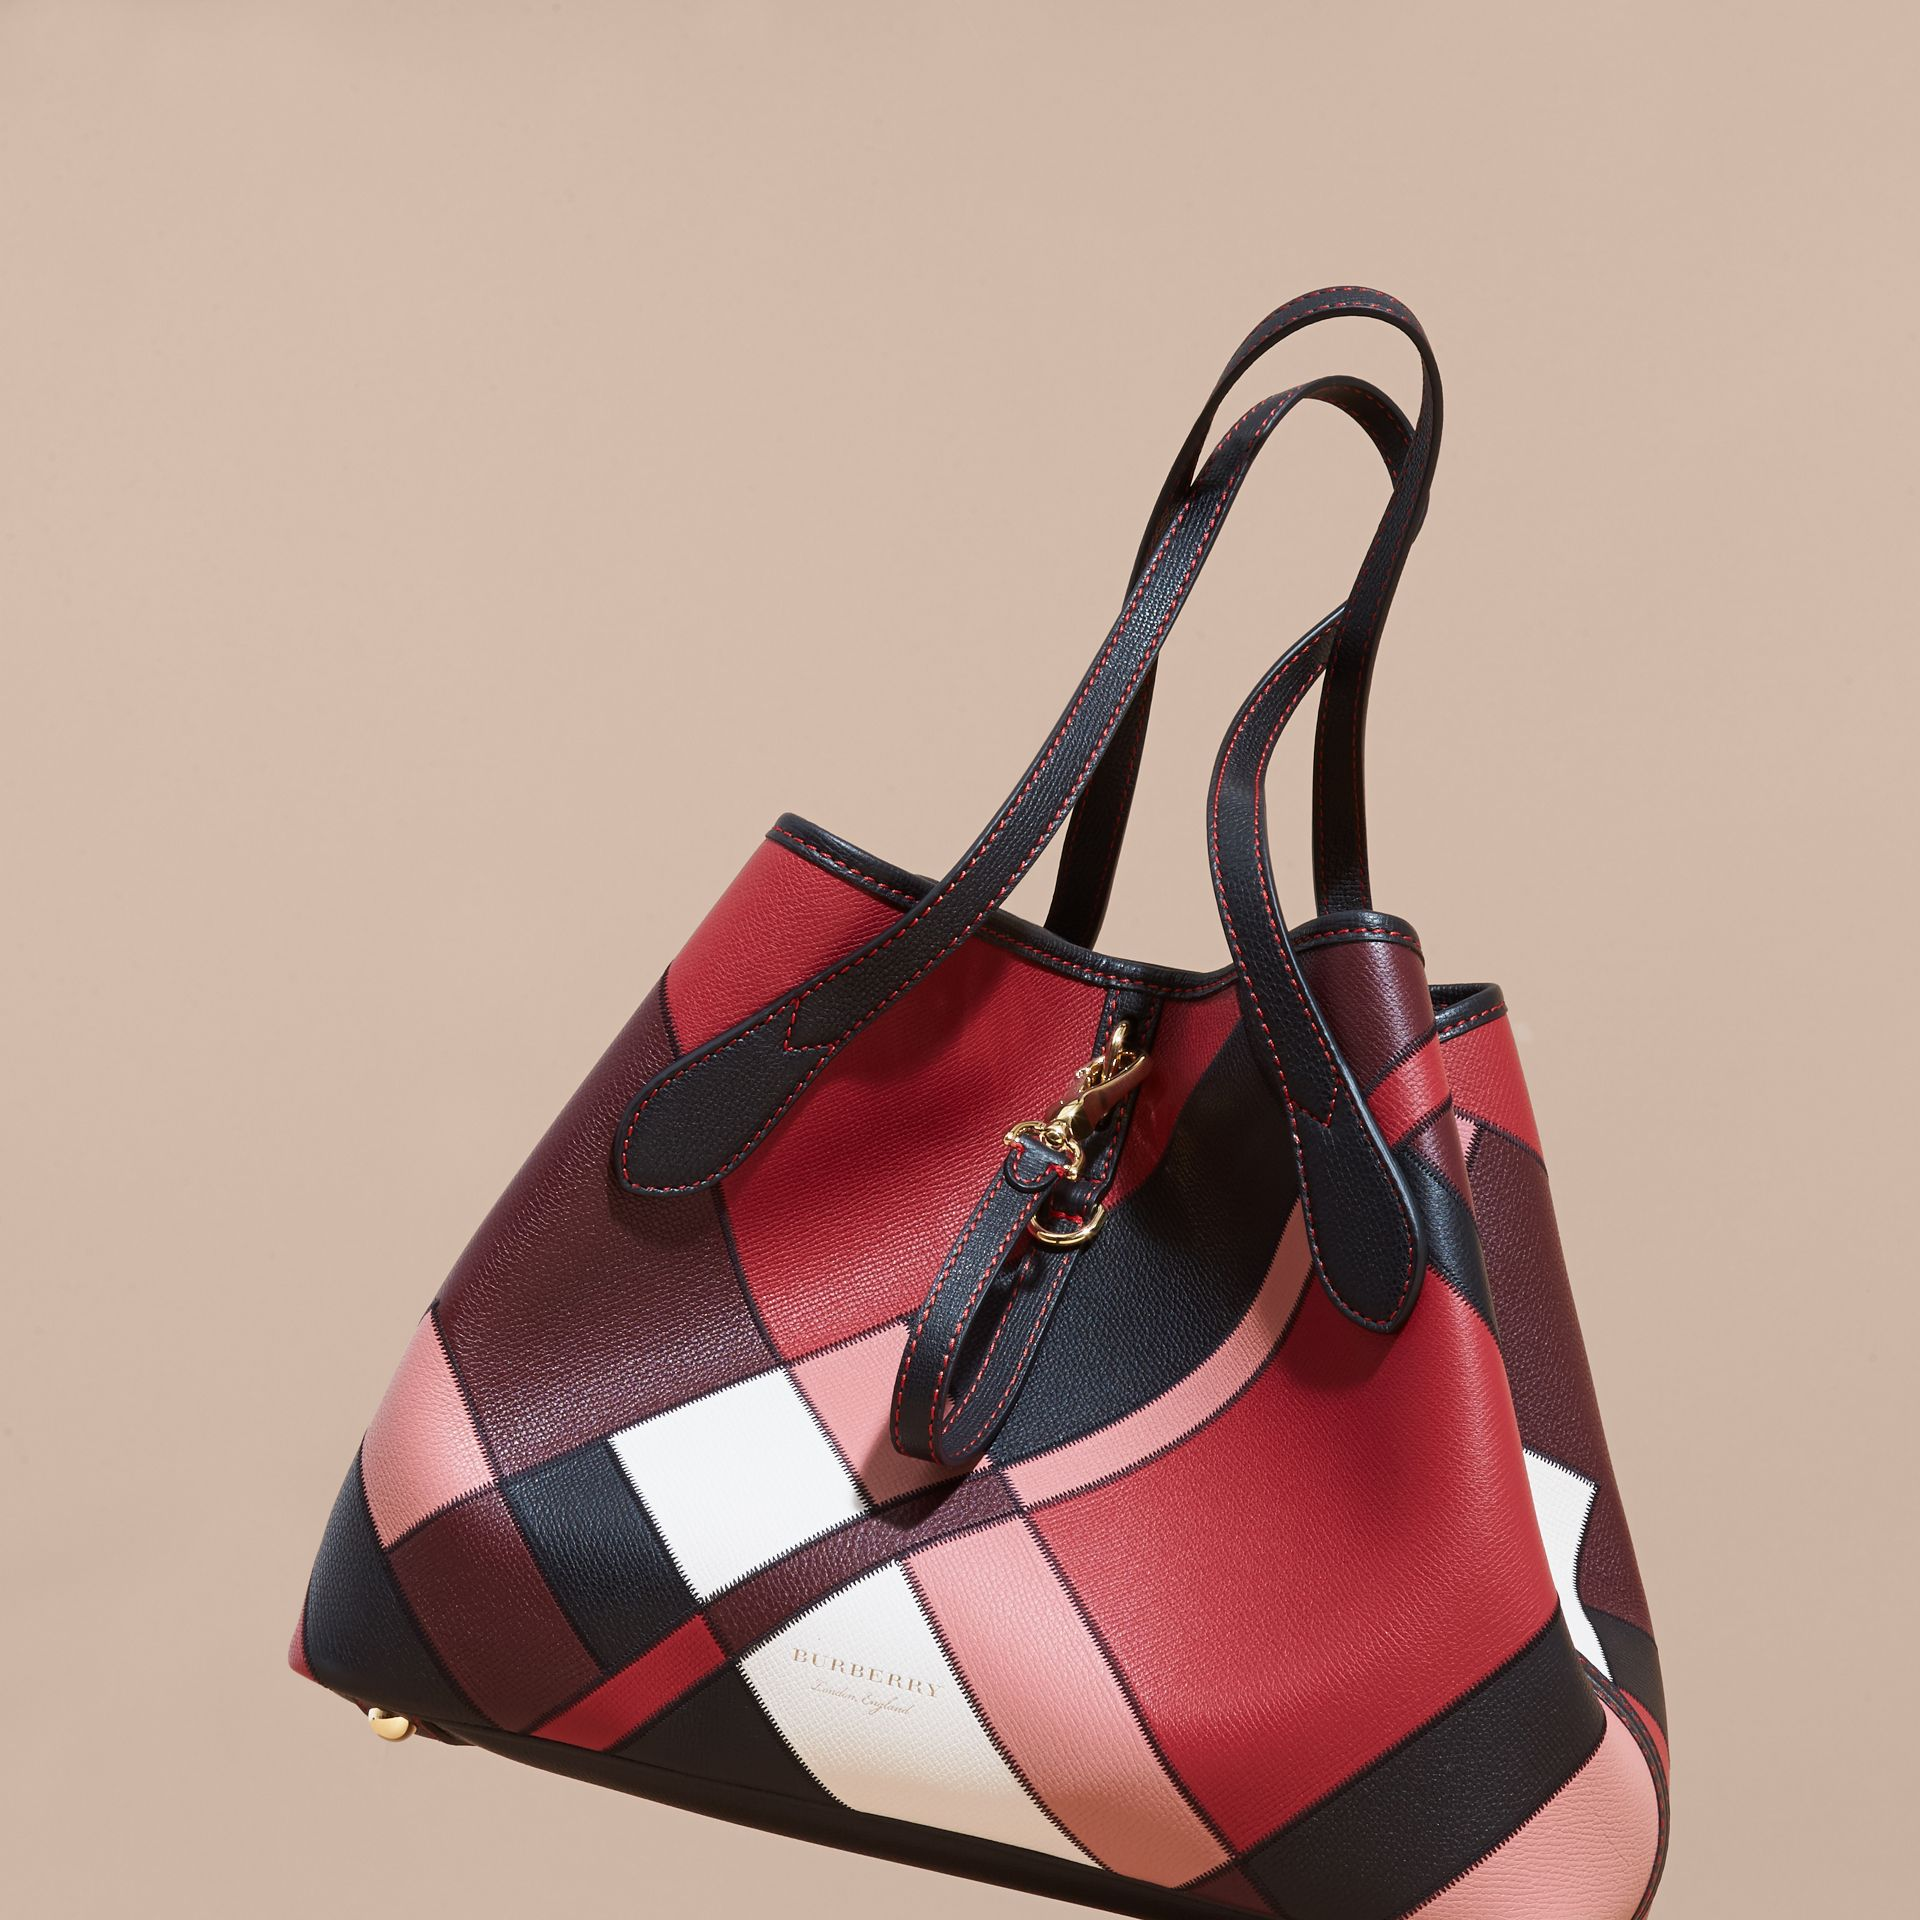 Medium Patchwork Grainy Leather Tote Bag in Pink - Women | Burberry - gallery image 7